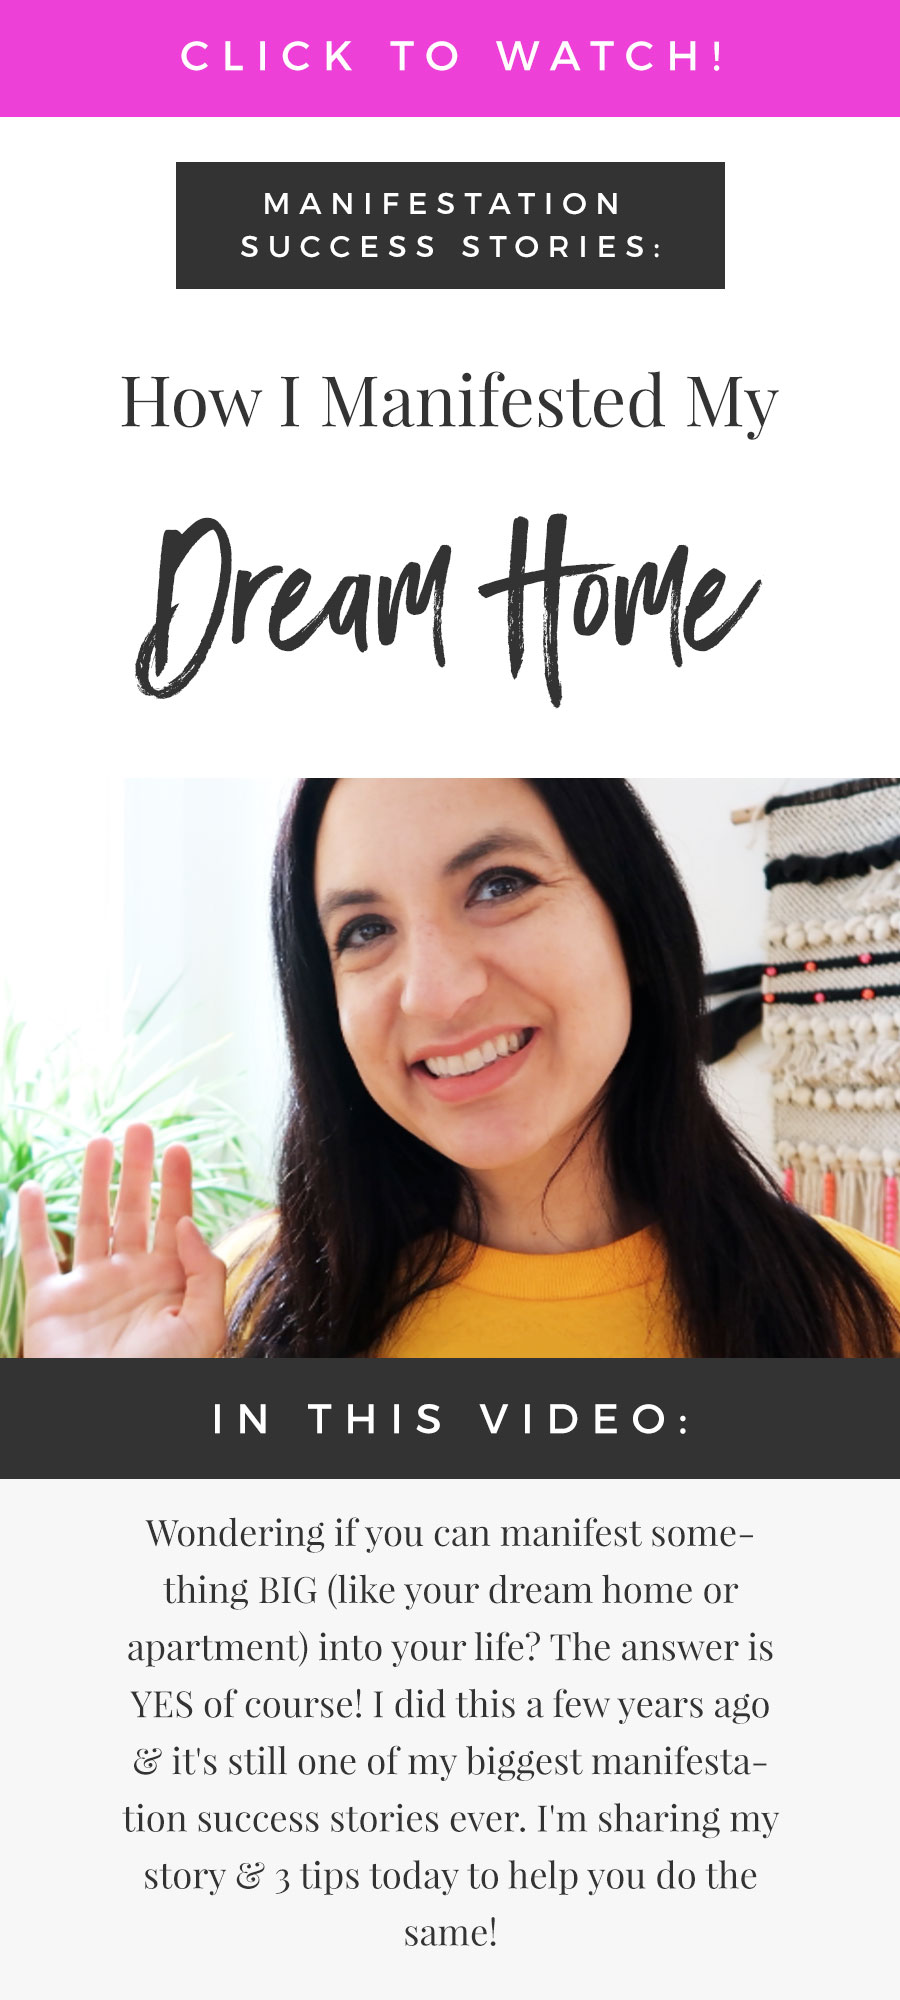 Manifestation Success Stories: How I Manifested My Dream Apartment